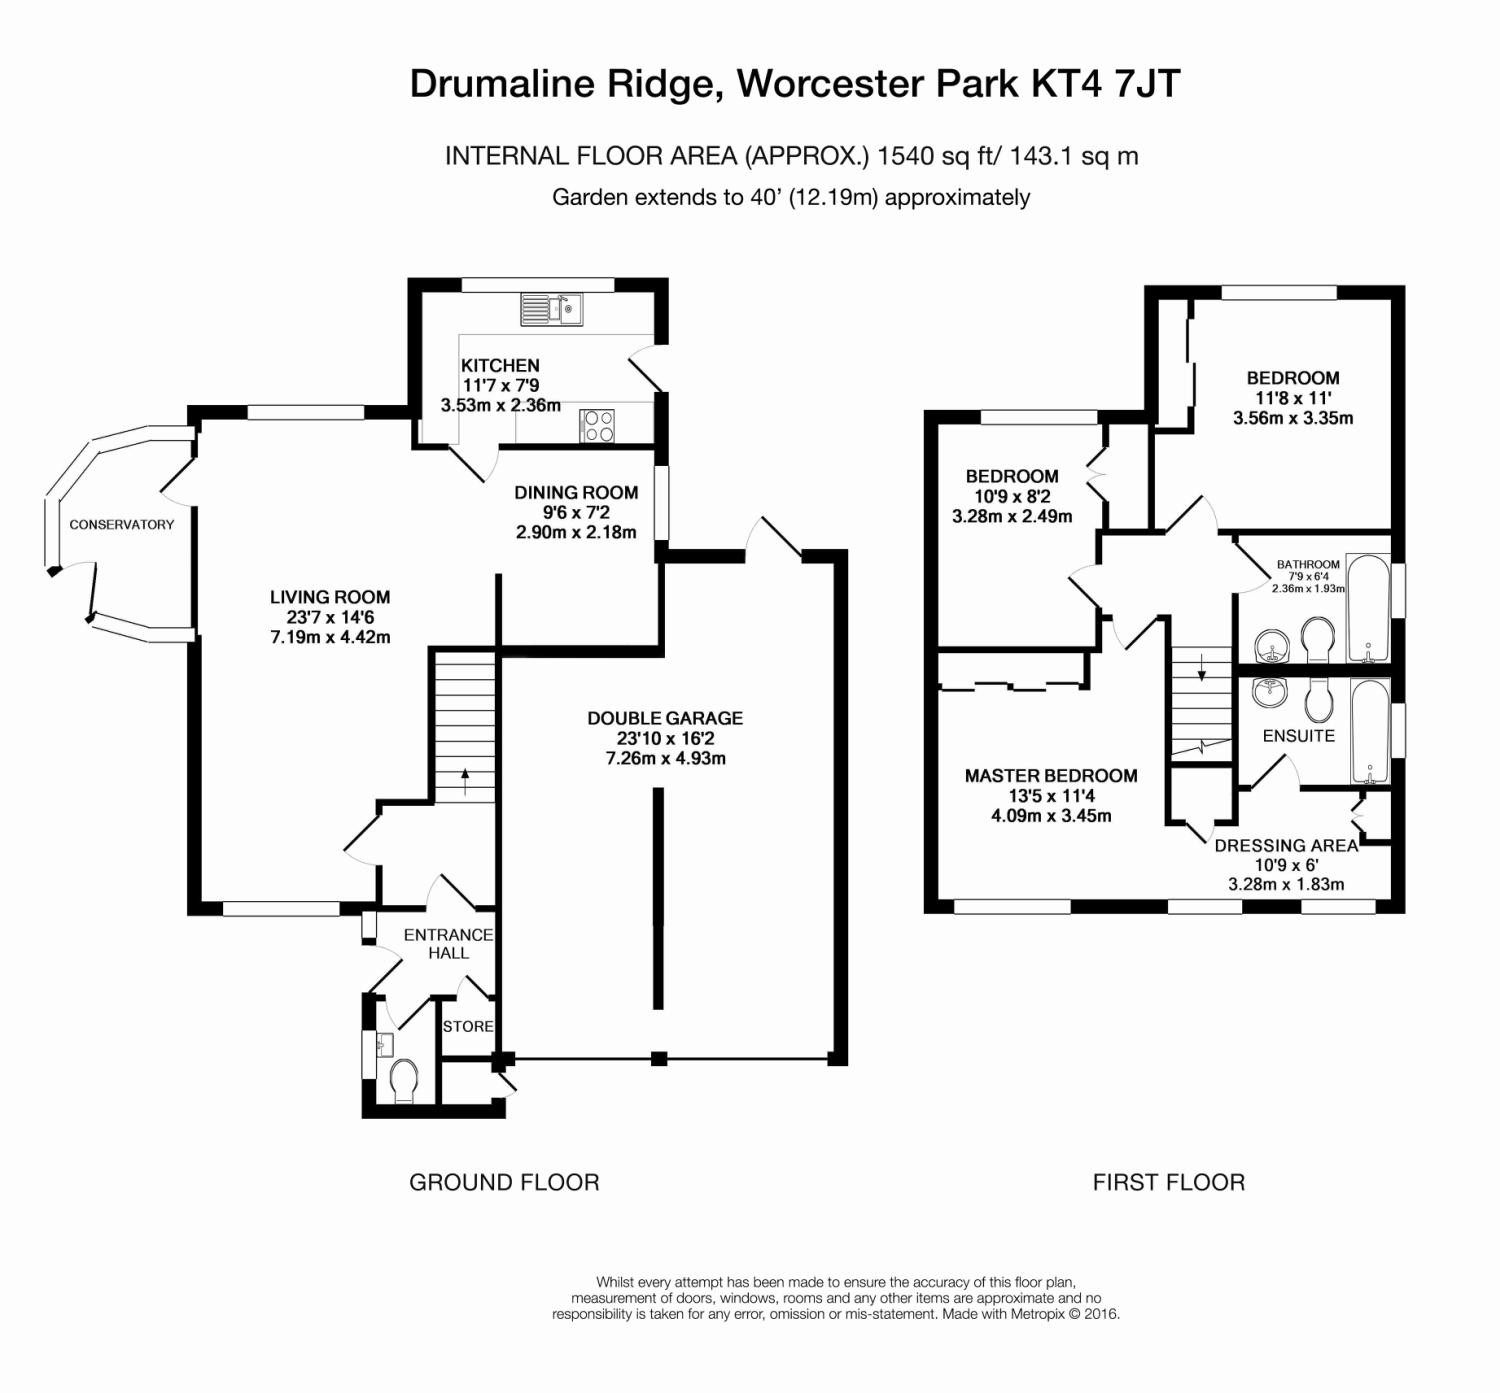 3 bedroom property for sale in Drumaline Ridge, Worcester